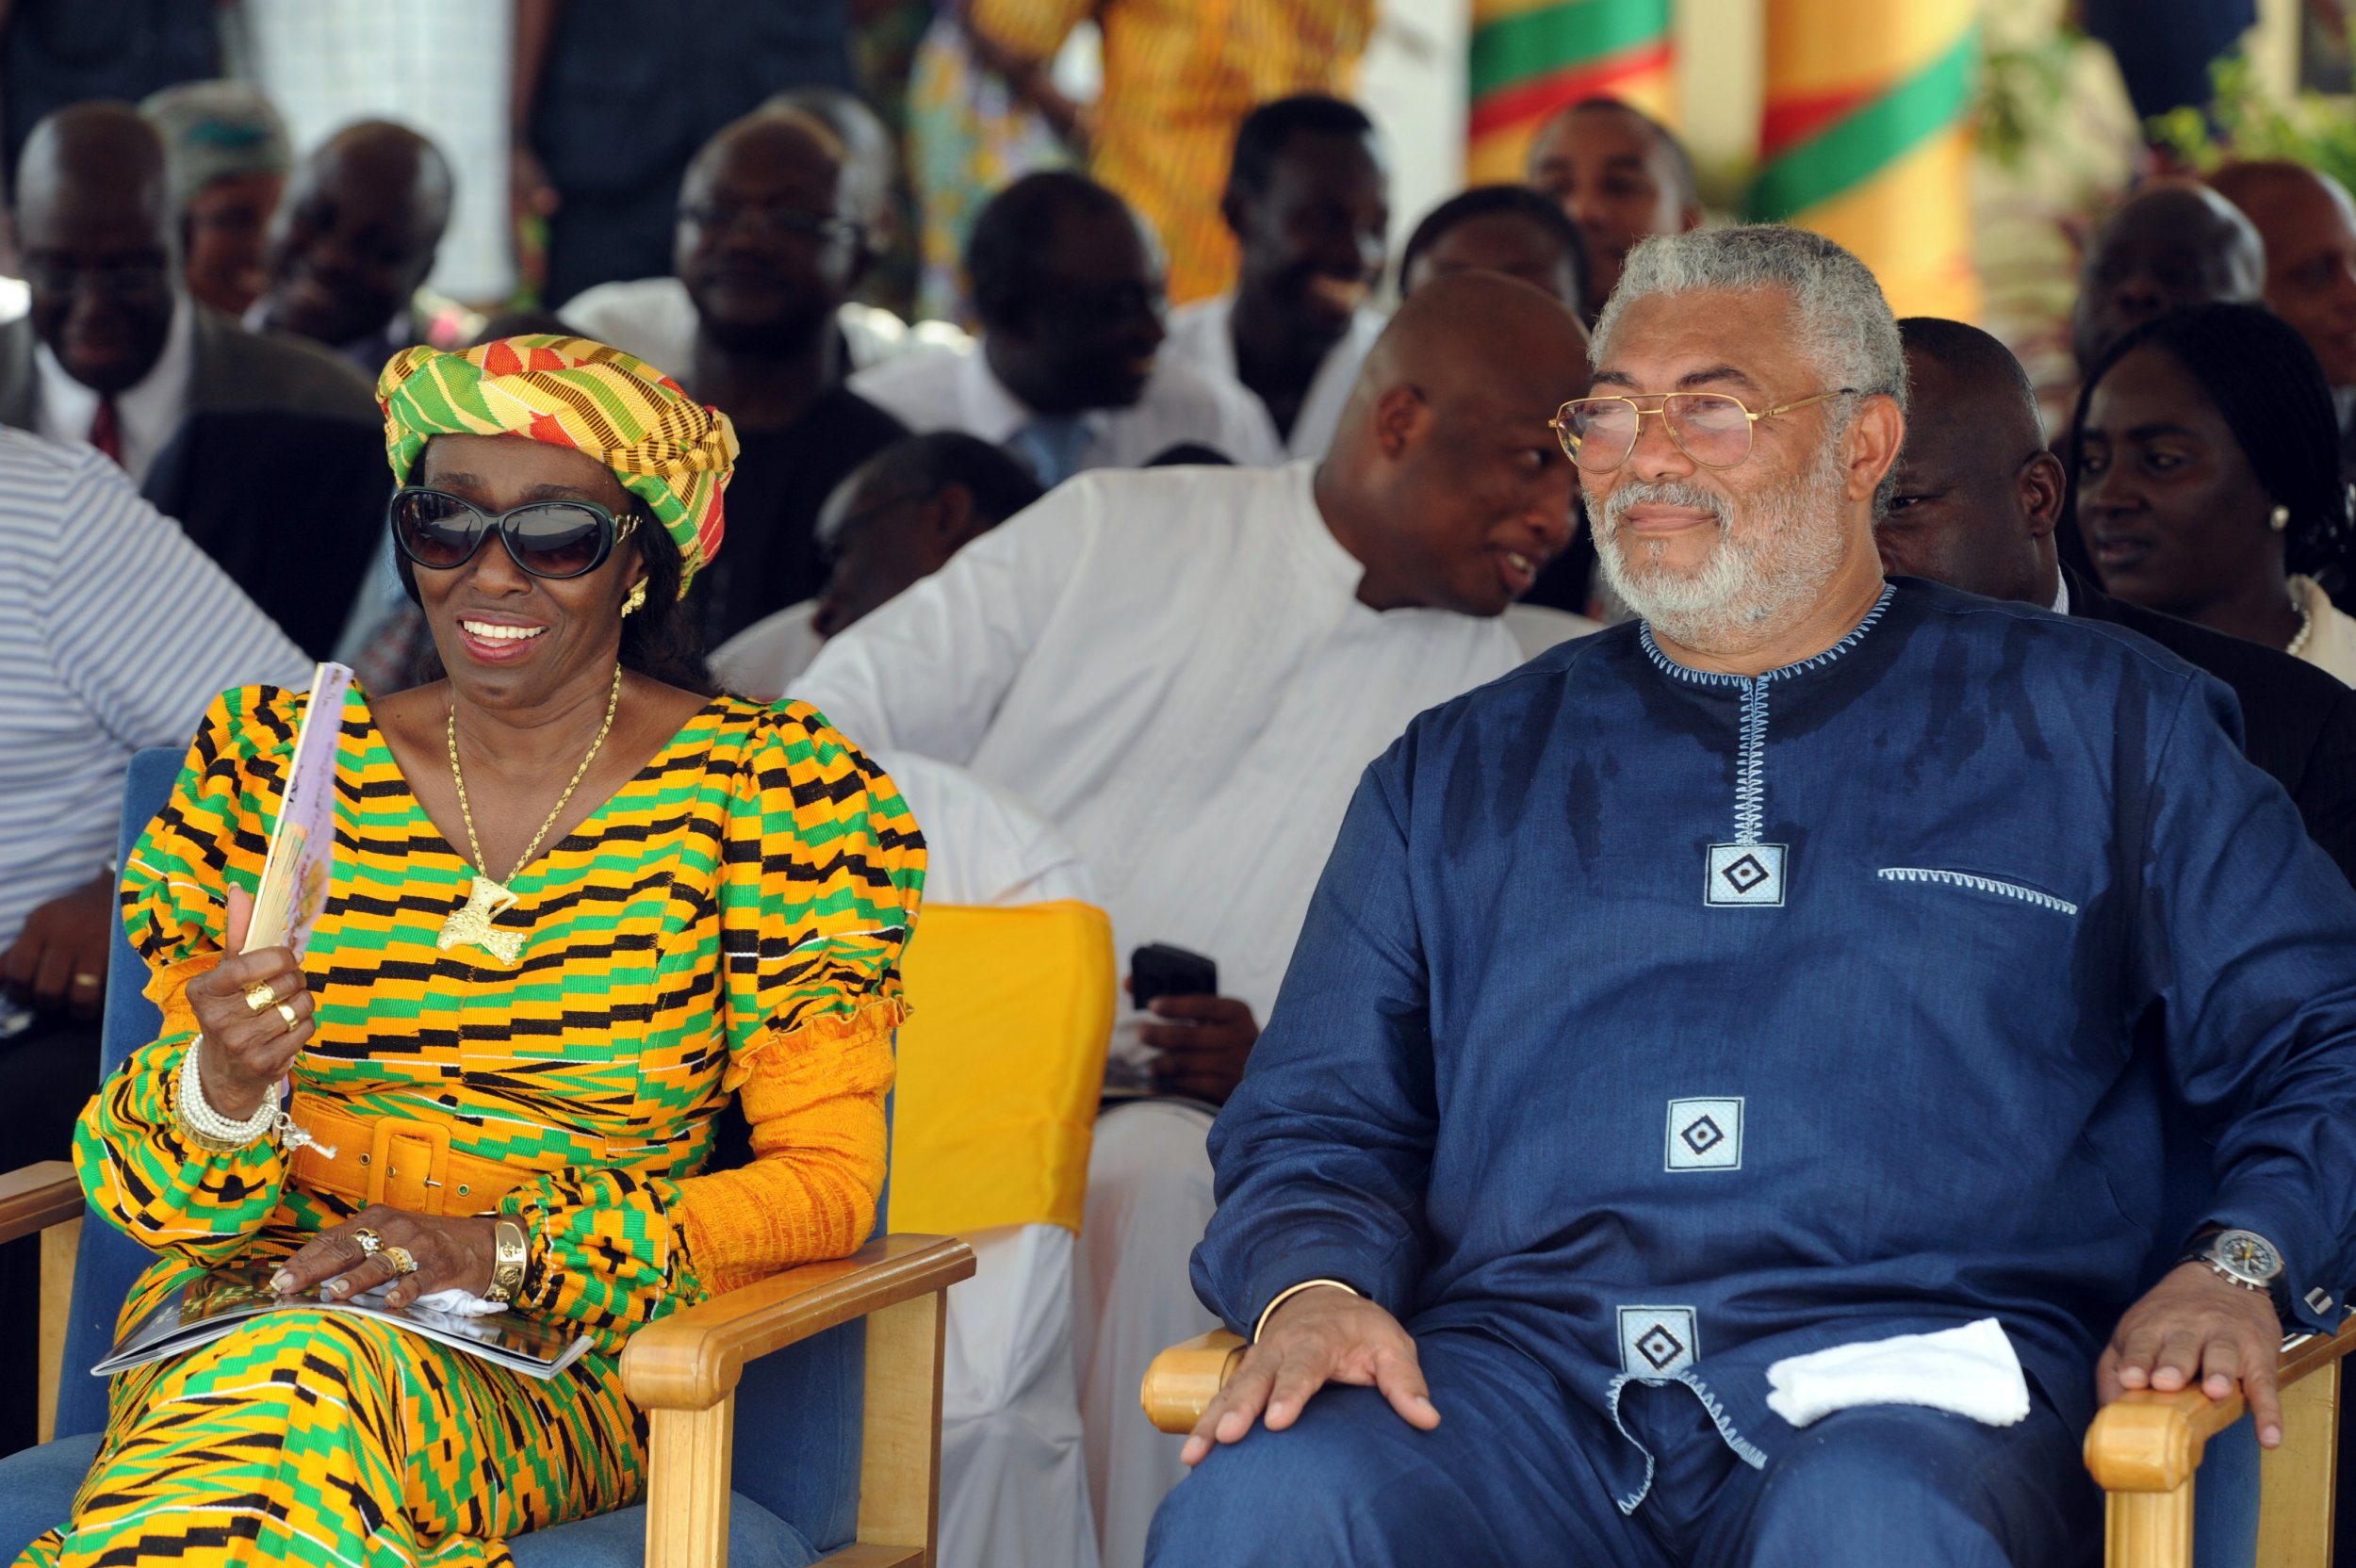 Nana Agyeman-Rawlings and Jerry Rawlings